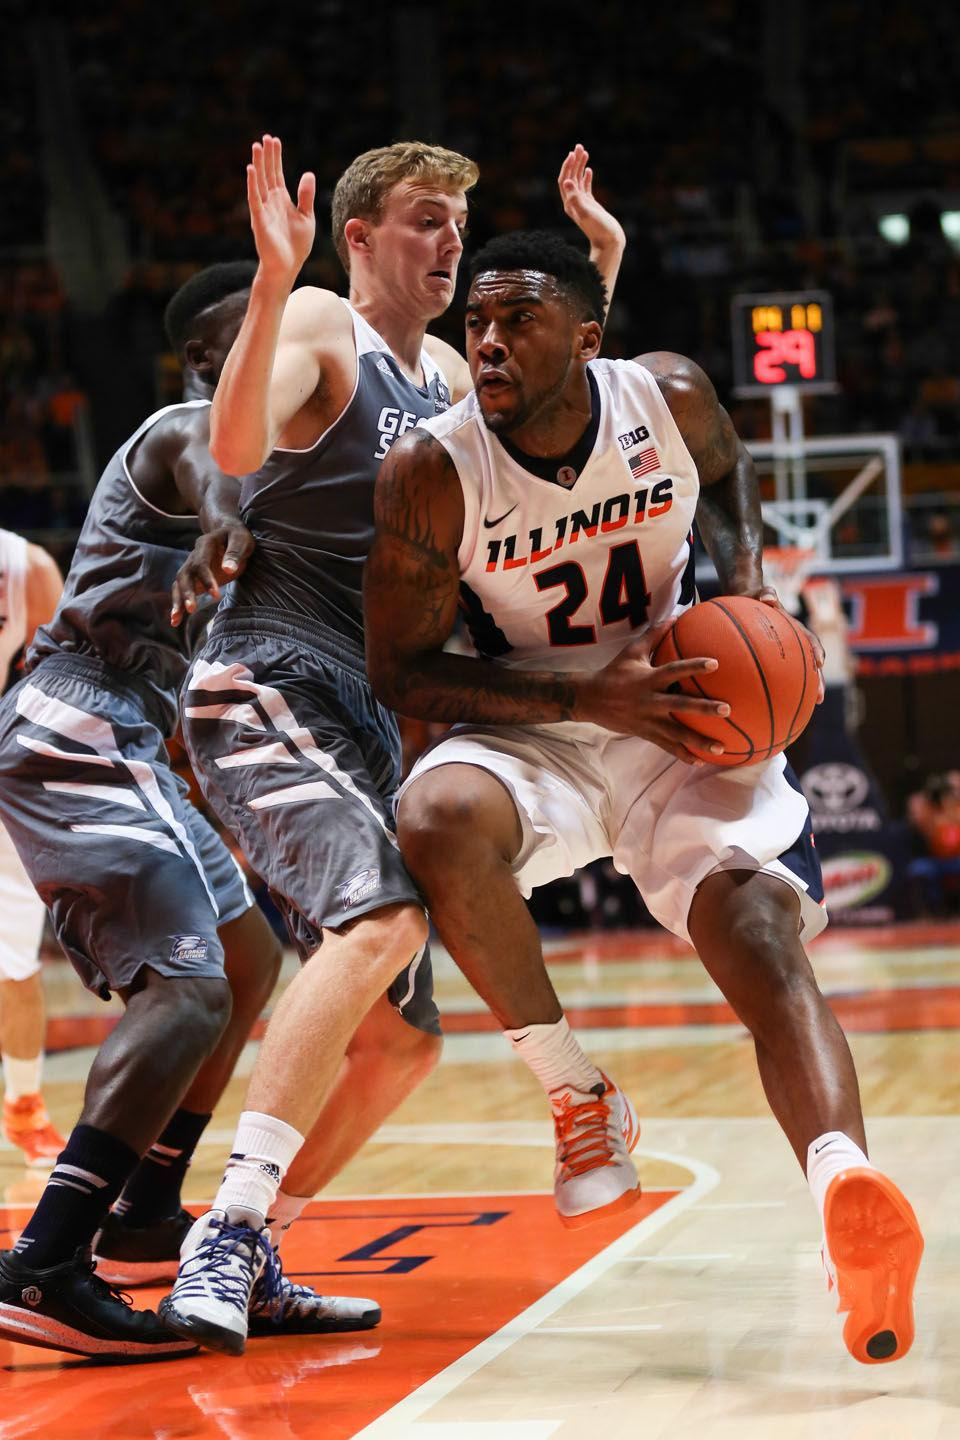 The+Illini+were+out-rebounded+in+a+tight+win+with+14+total+lead+changes.